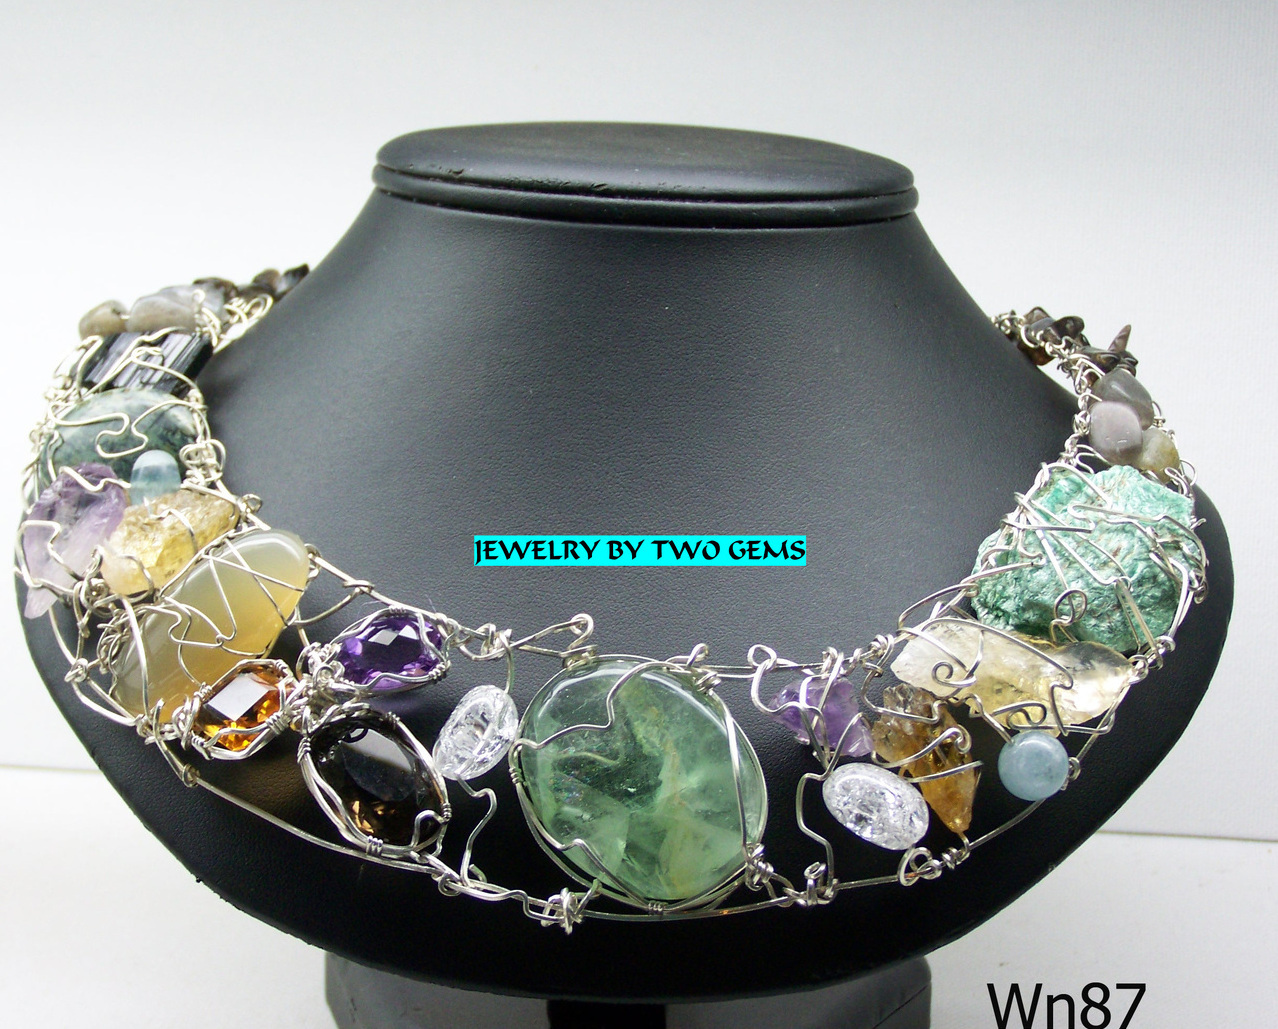 Jewelry By Two Gems (Wn89) The Crown Jewels Sterling Silver Wire Wrap Necklace